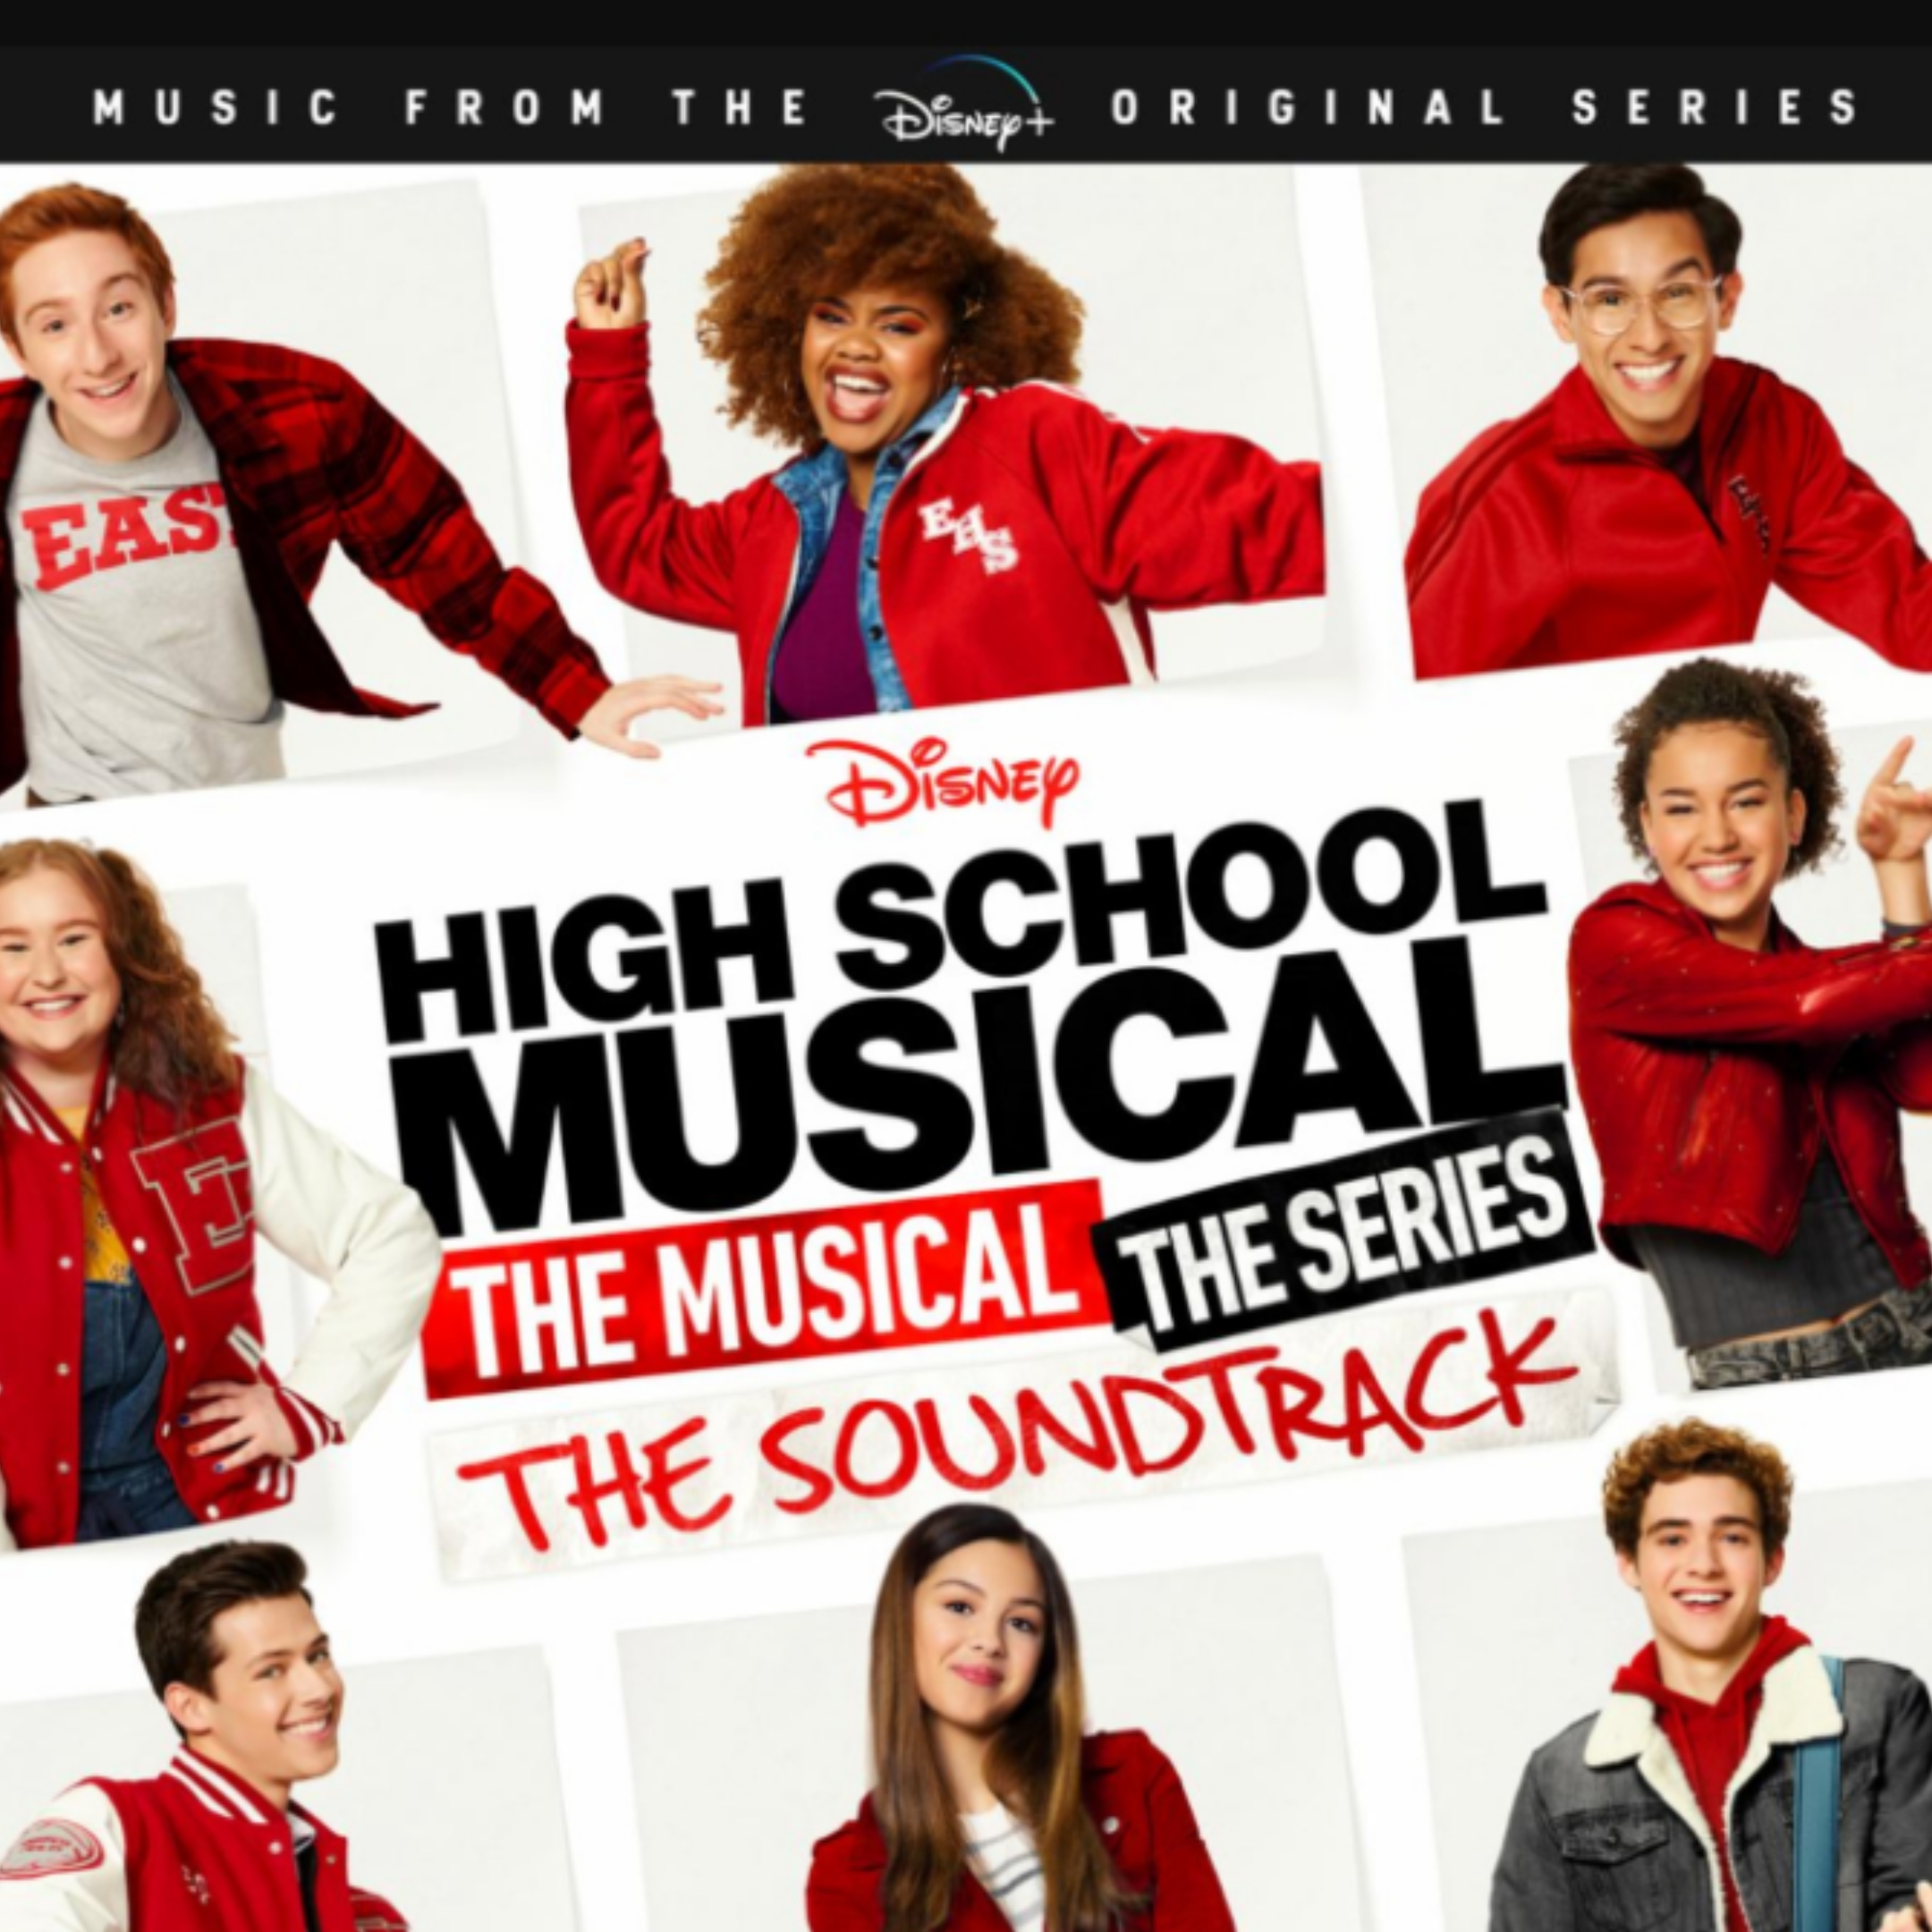 High School Musical, the series, Disney, 360 MAGAZINE